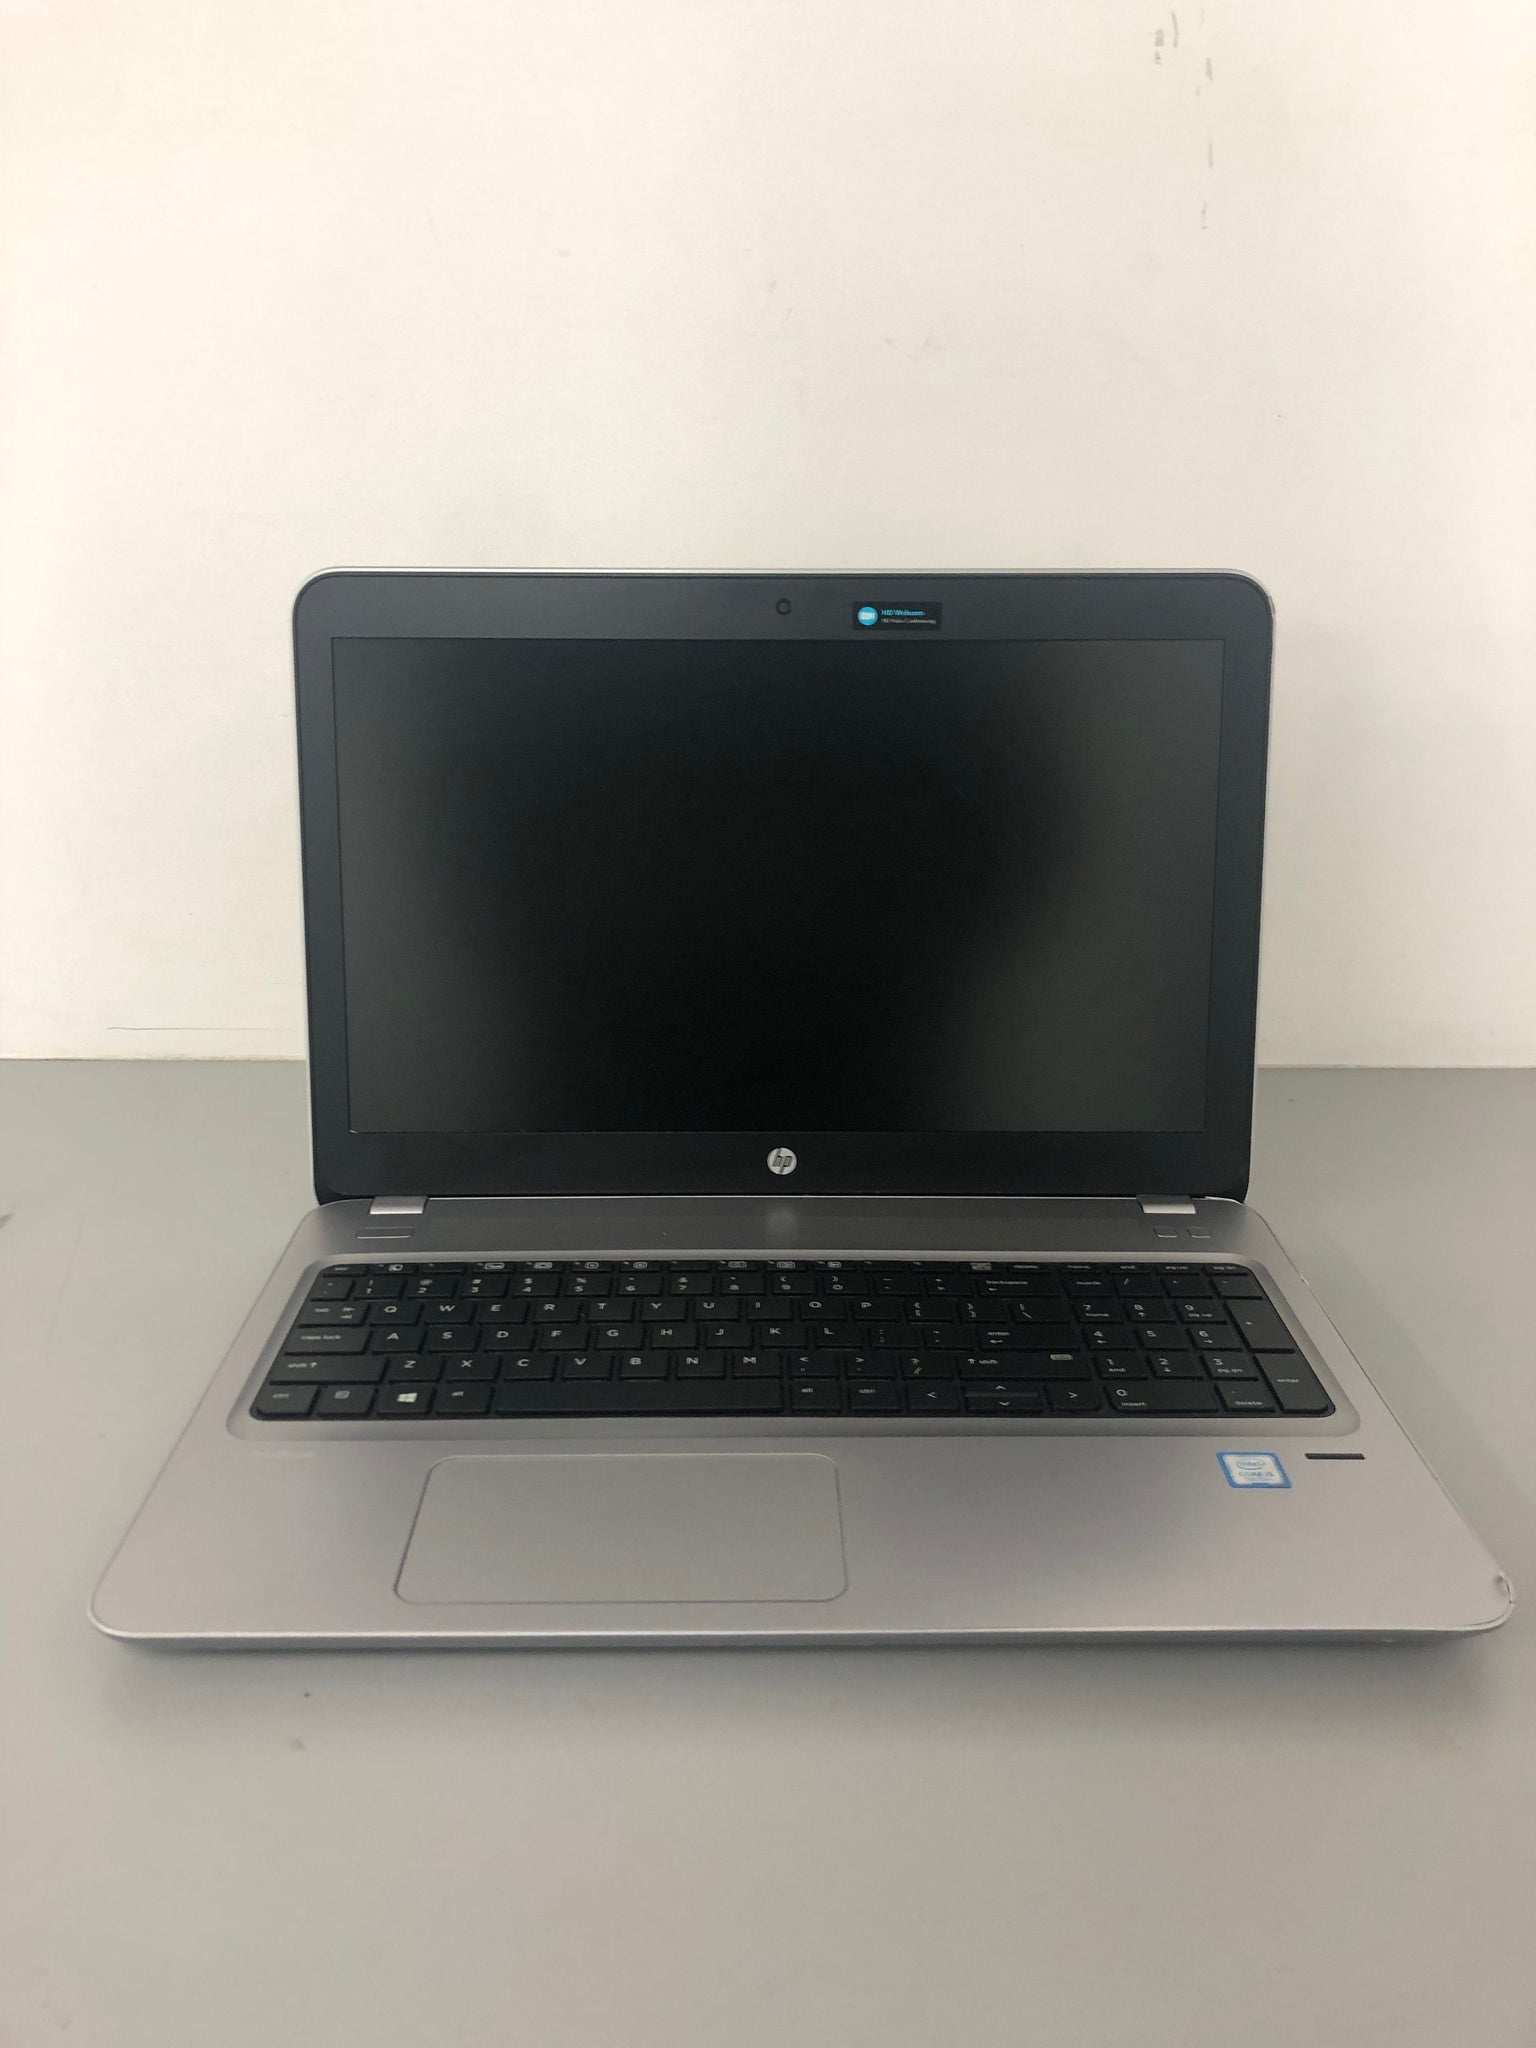 "B GRADE-HP ProBook 450 G4 Ex Lease Laptop  i5-7200U Turbo 3.2Ghz  8GB RAM 120GB SSD 15.6"" Windows 10 (BLEMISH ON SCREEN)"